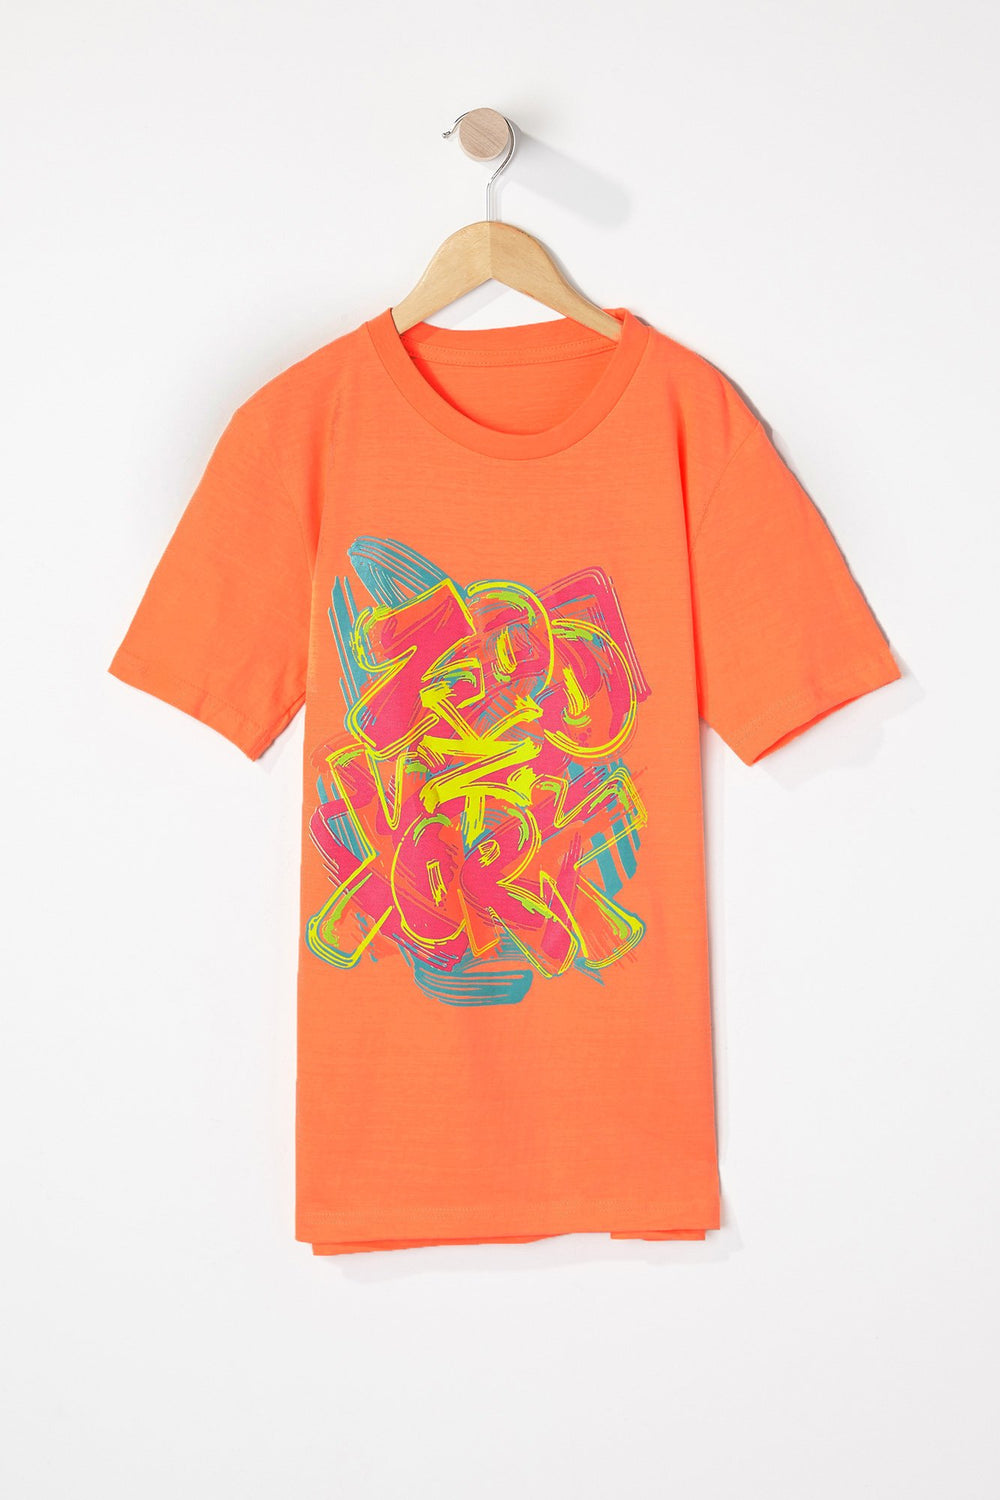 T-Shirt Graffiti Zoo York Garçon Orange